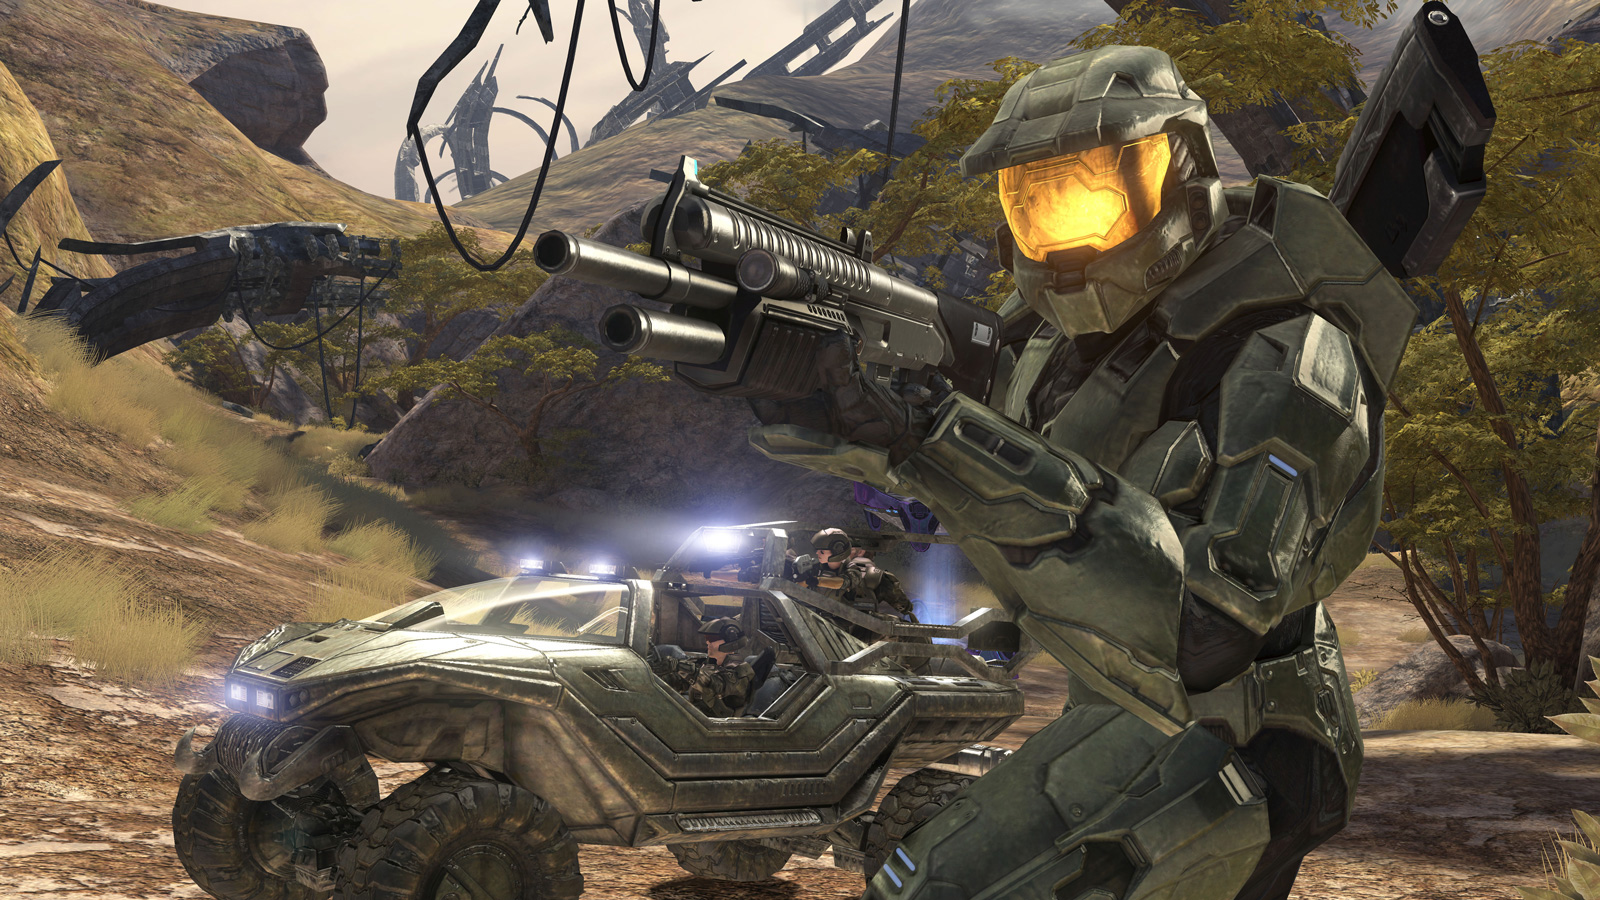 halo reach free download full version xbox 360